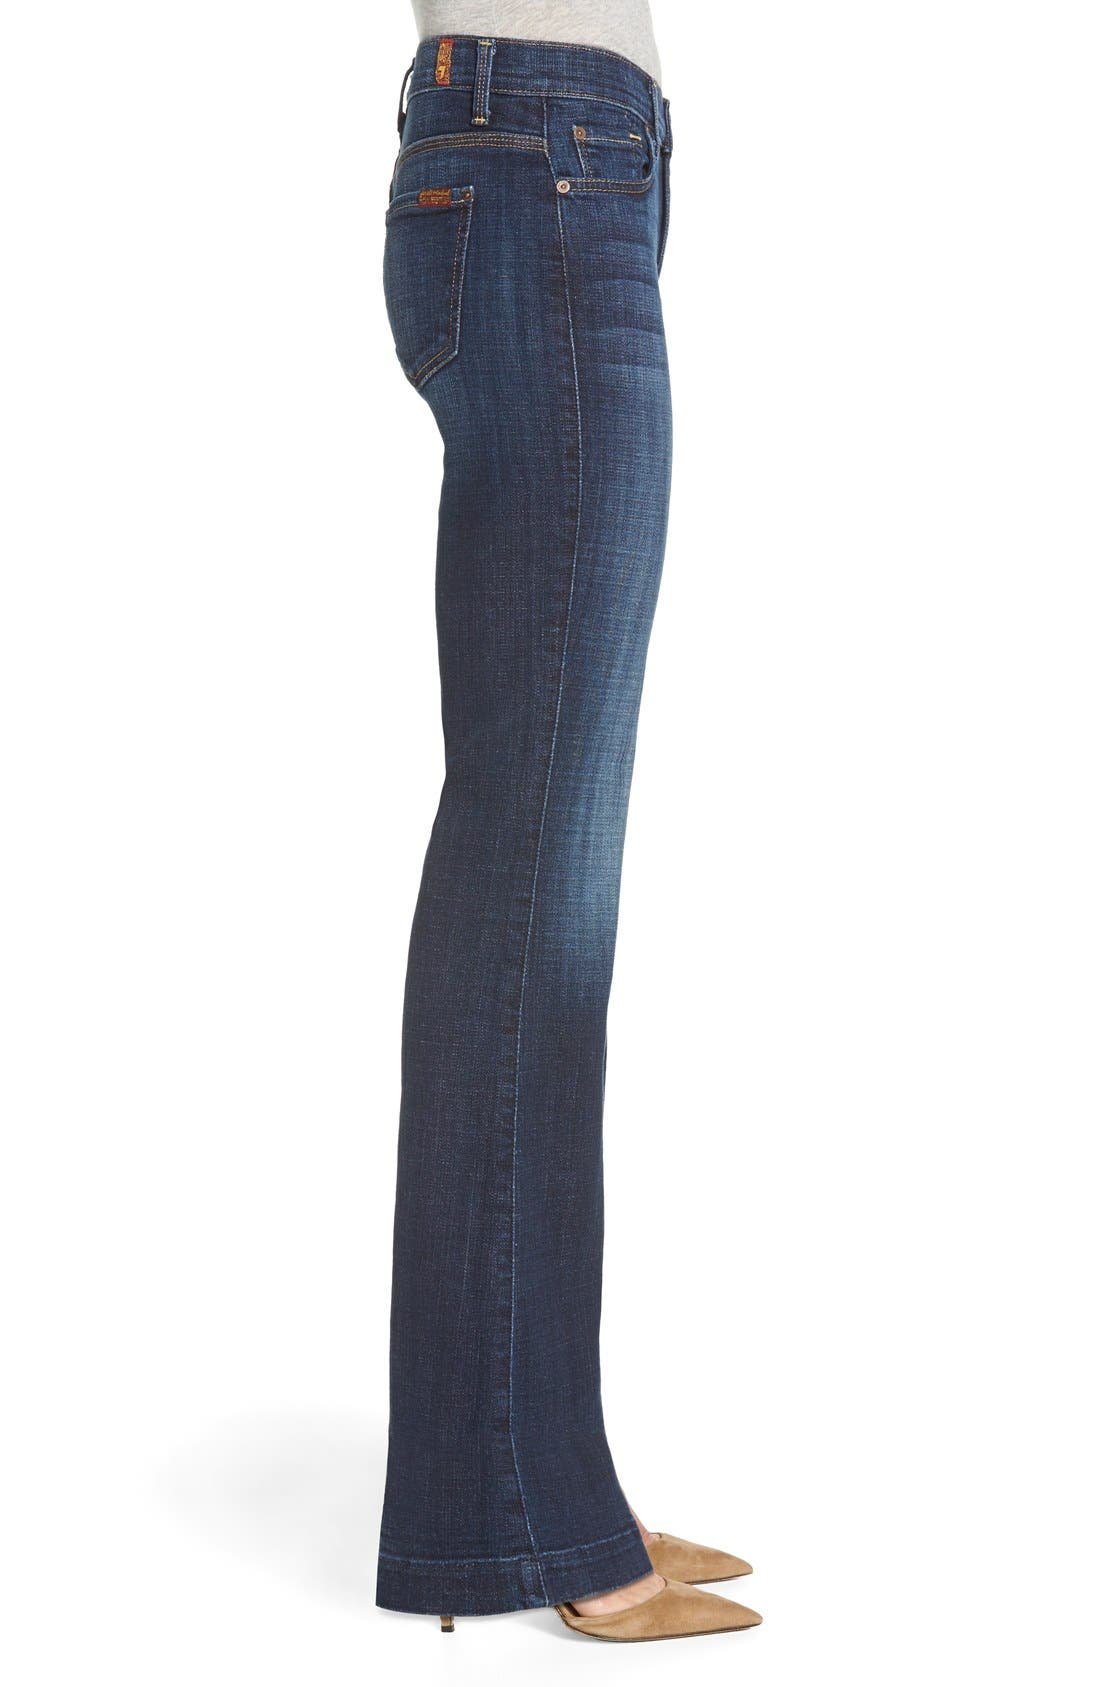 Alternate Image 3  - 7 For All Mankind® 'Tailorless Ginger' High Rise Flare Jeans (Royal Broken Twill) (Short)